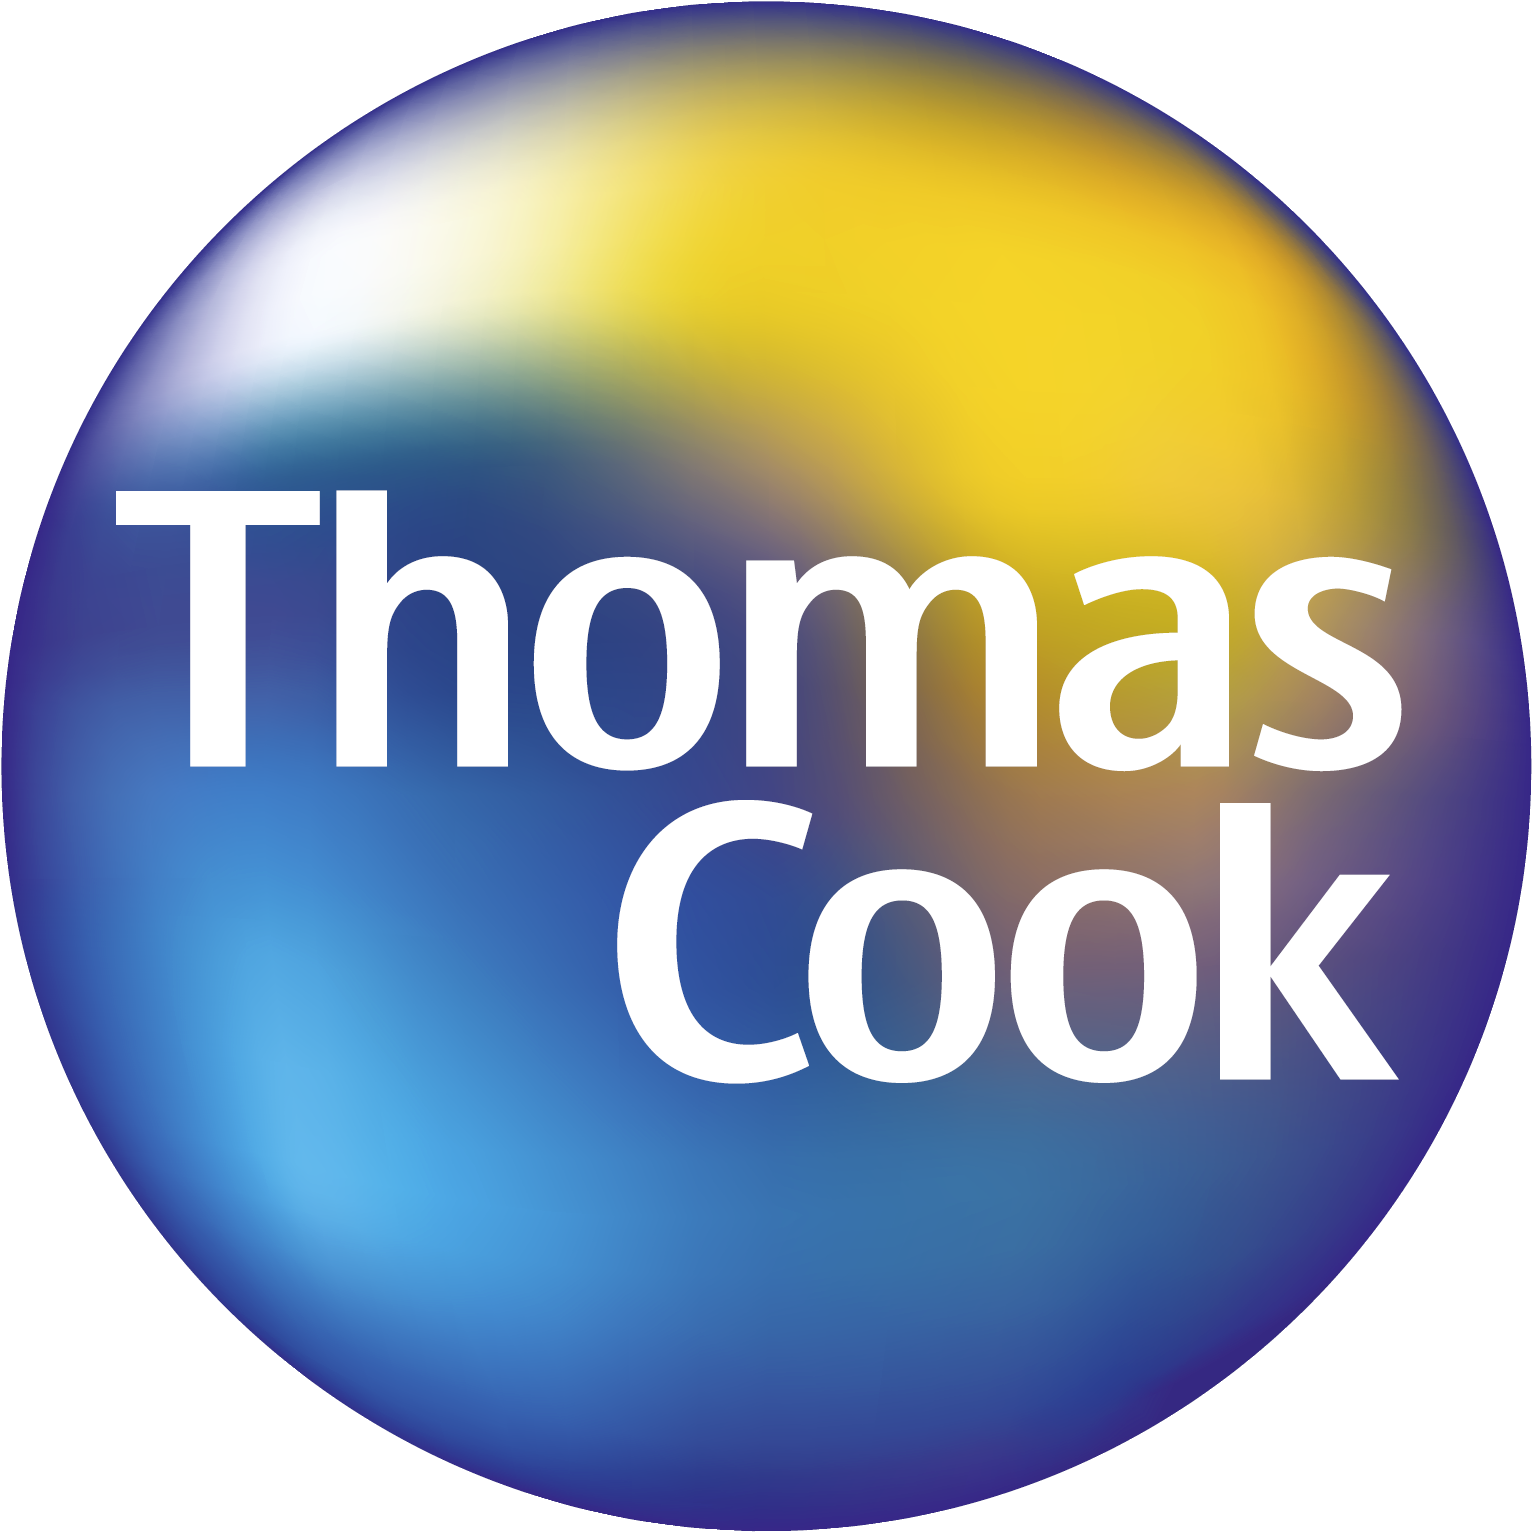 Thomas_Cook_2001.png